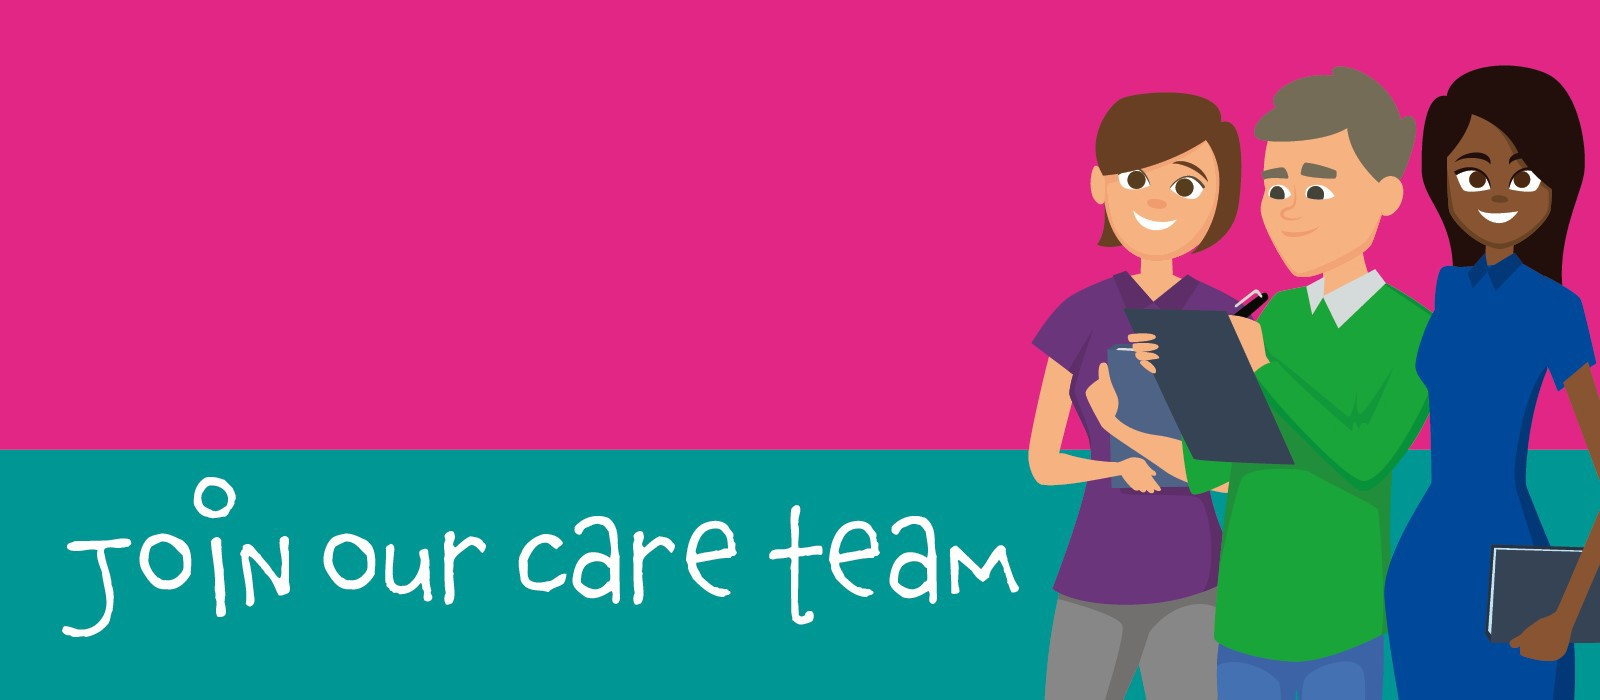 Join our Care team